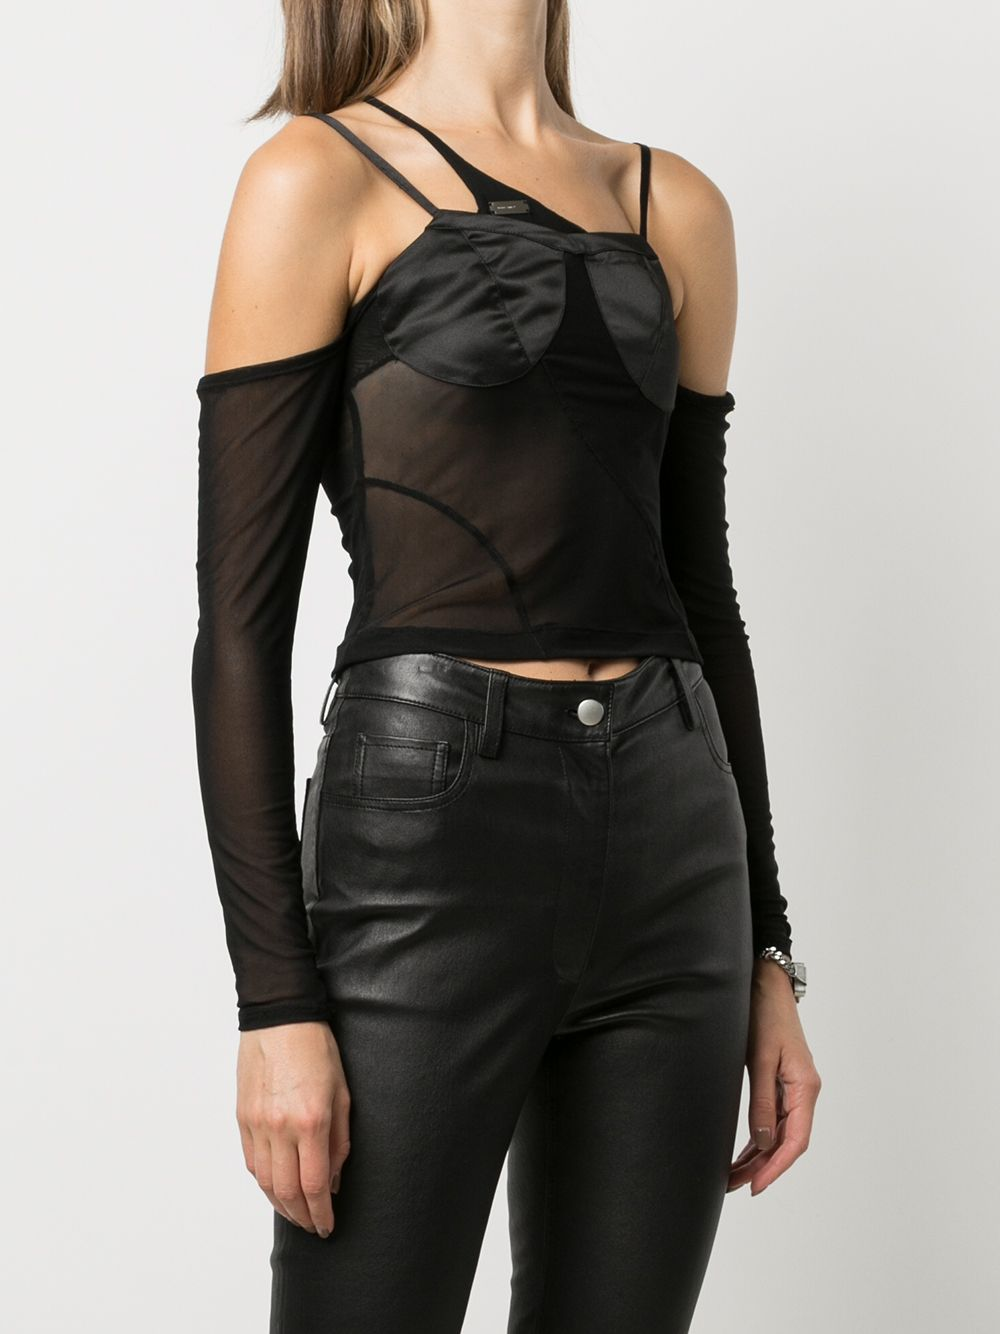 HELIOT EMIL WOMEN SHEER TOP WITH BRA DETAIL